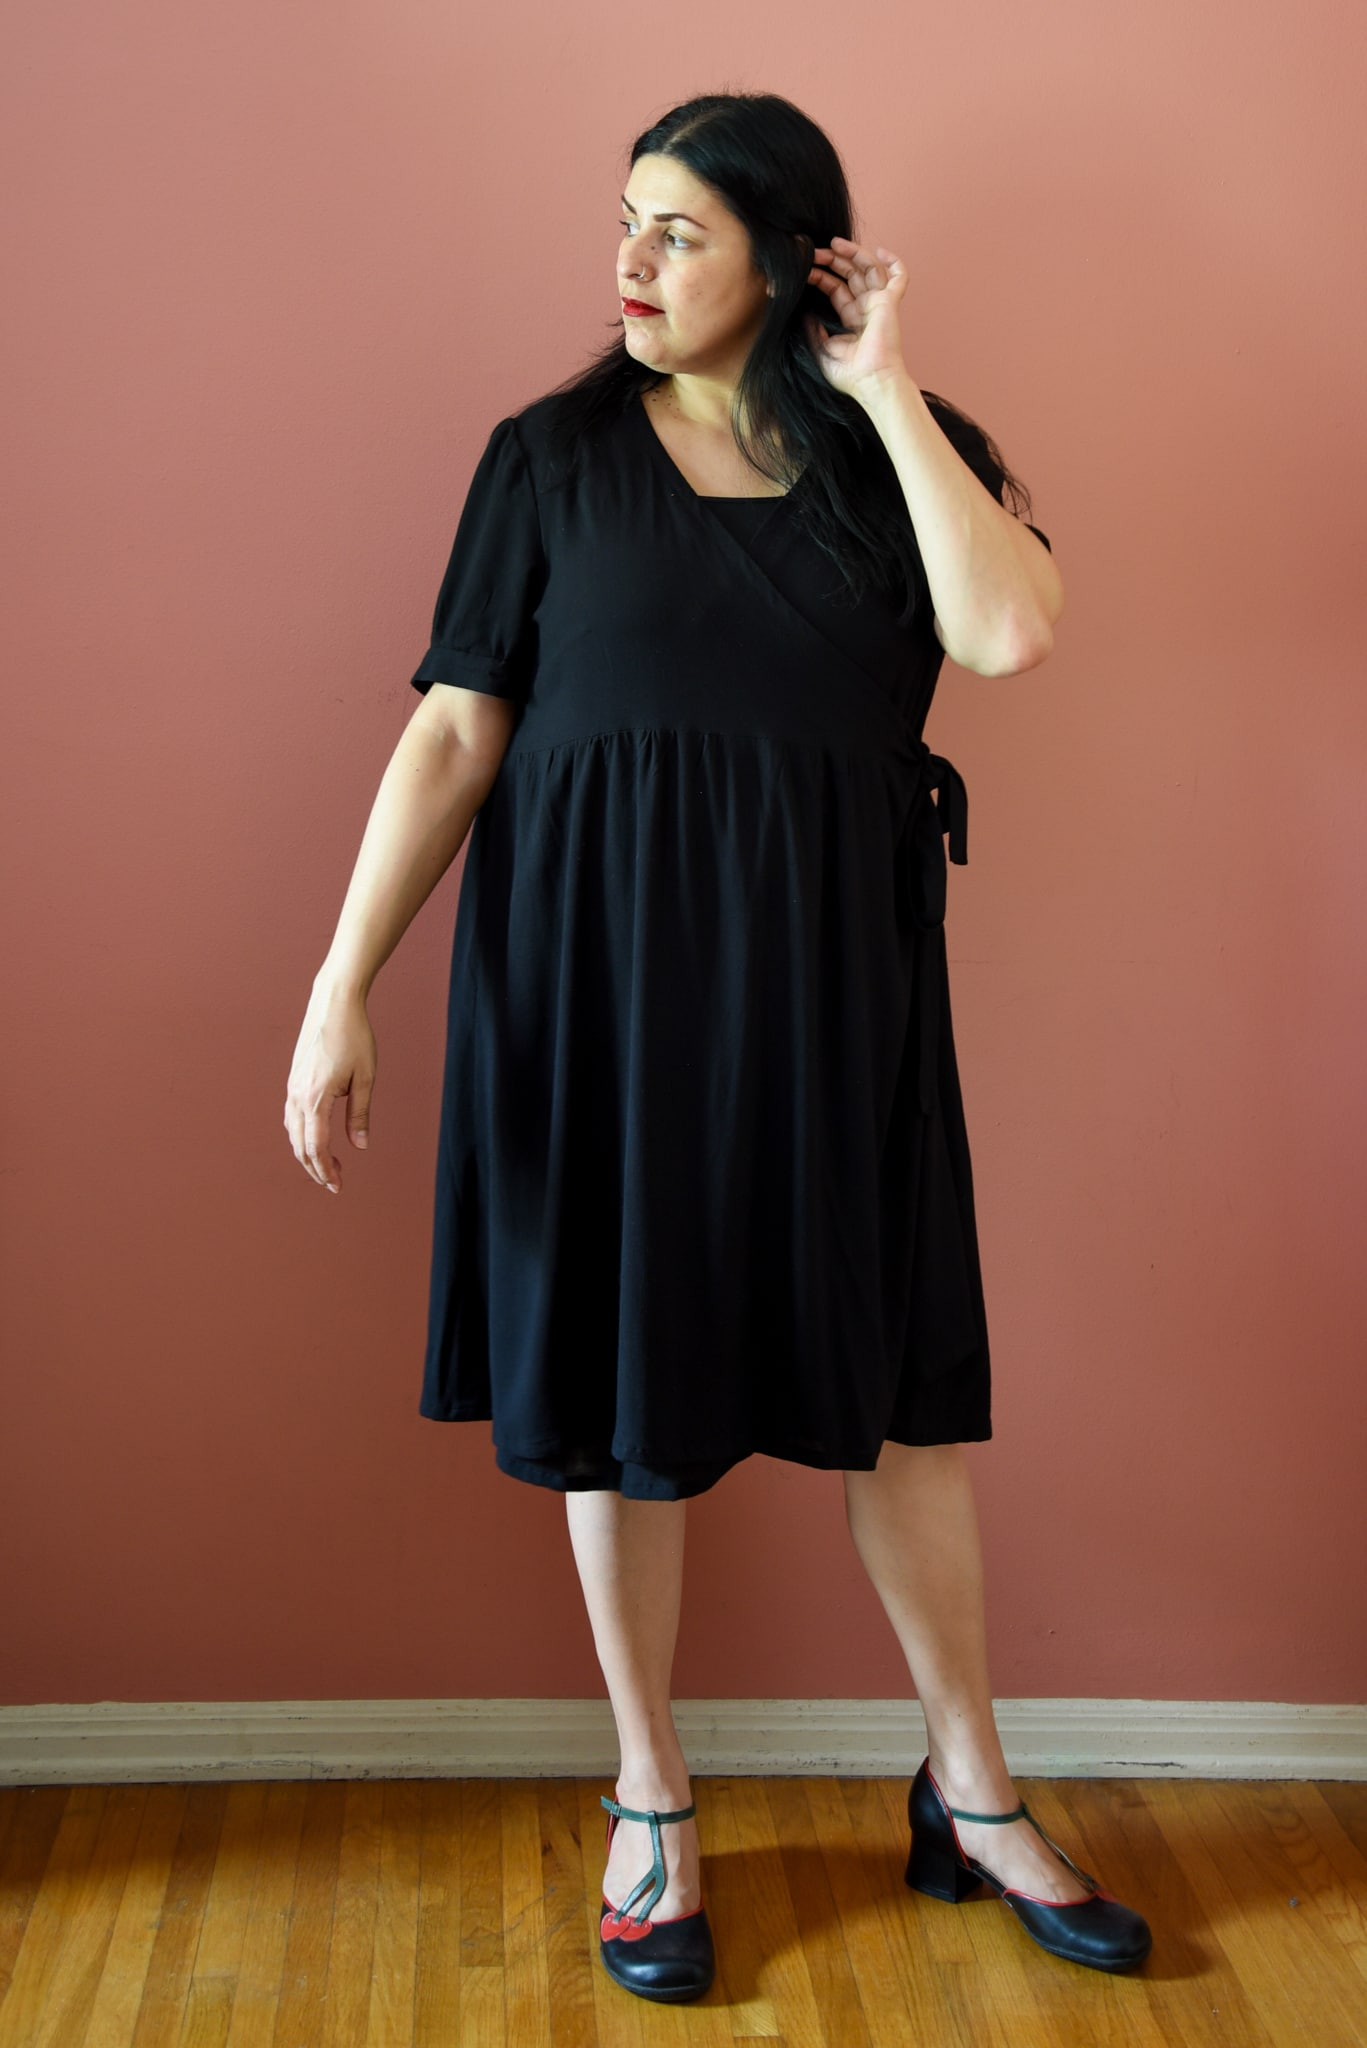 Image of a woman wearing a black wrap dress standing in front of a pink wall.